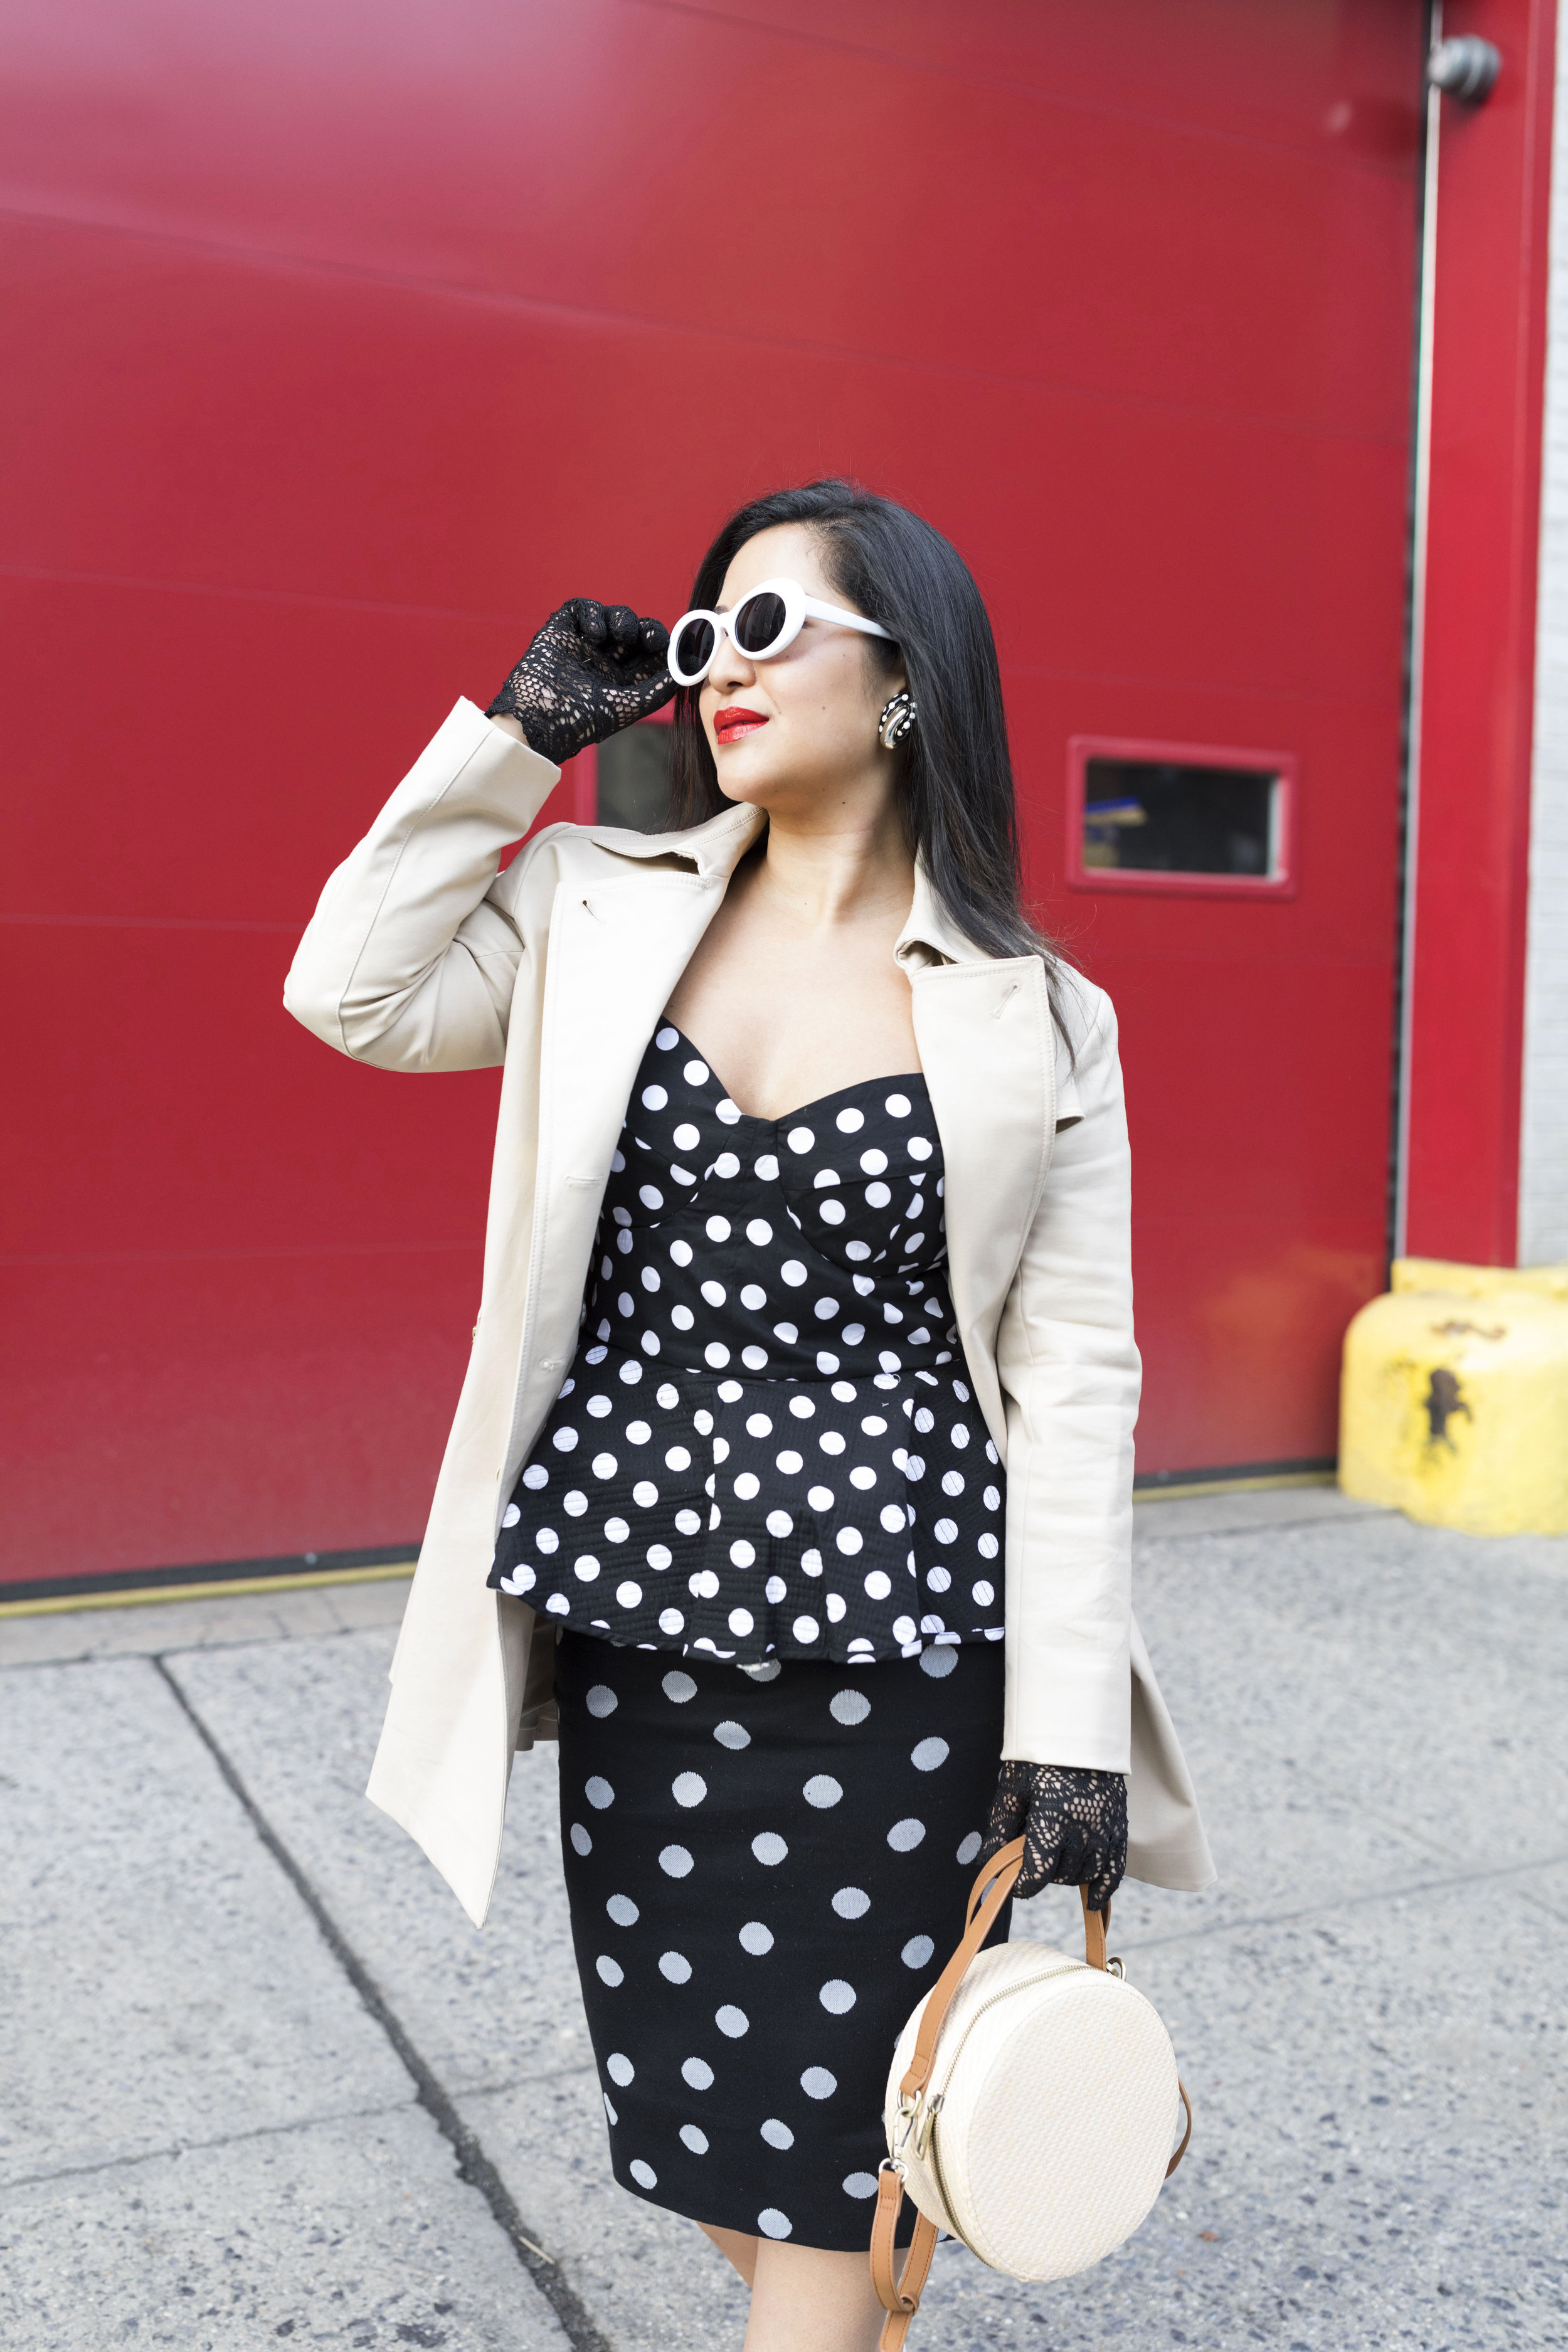 Krity S x Polka Dots x Spring Outfit9.jpg